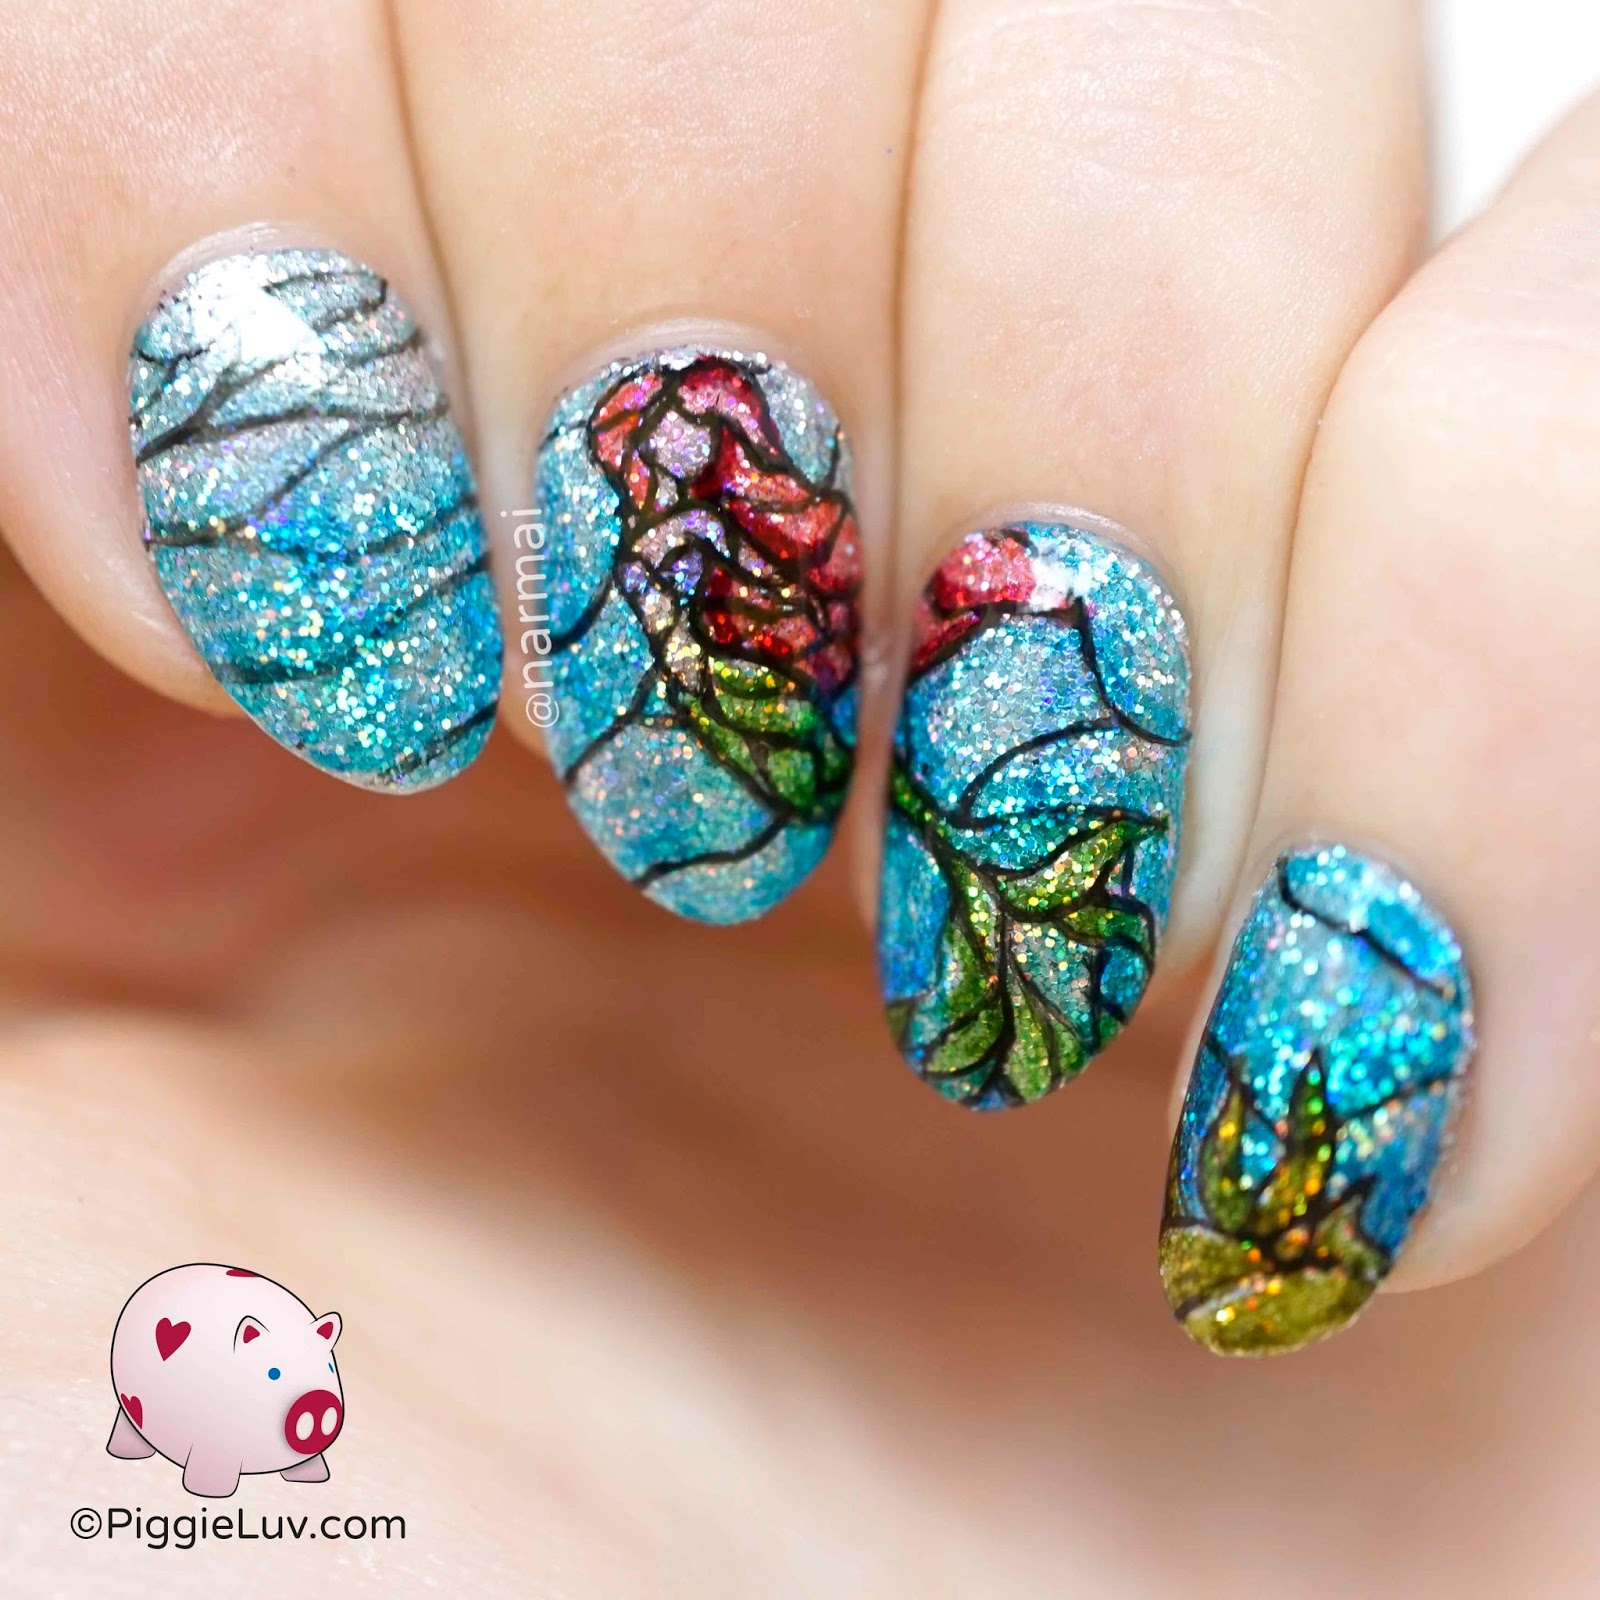 PiggieLuv: Stained glass mermaid nail art